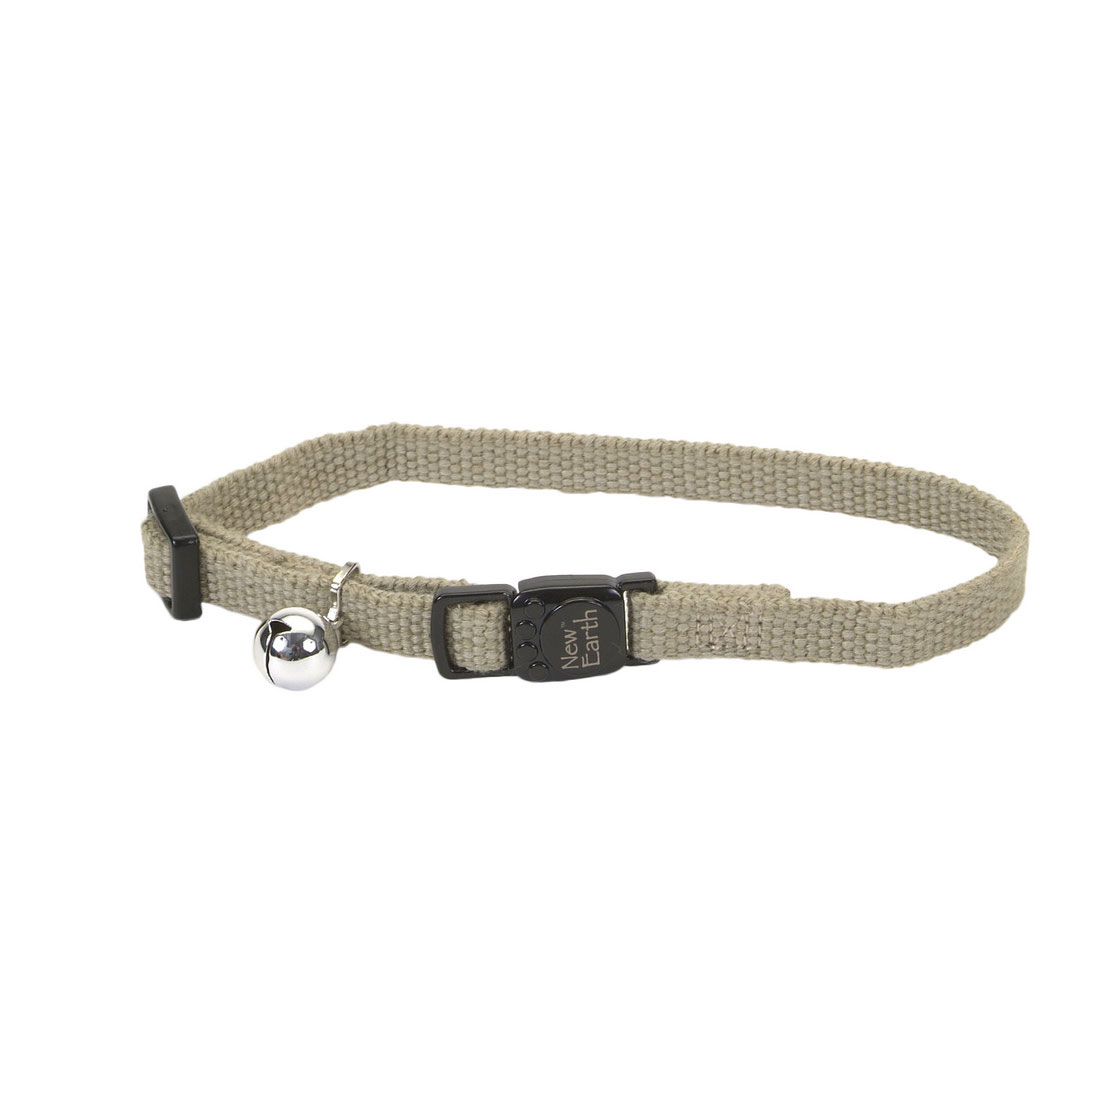 Coastal New Earth Soy Adjustable Breakaway Cat Collar, Olive, 8-12-in (Size: 8-12-in) Image